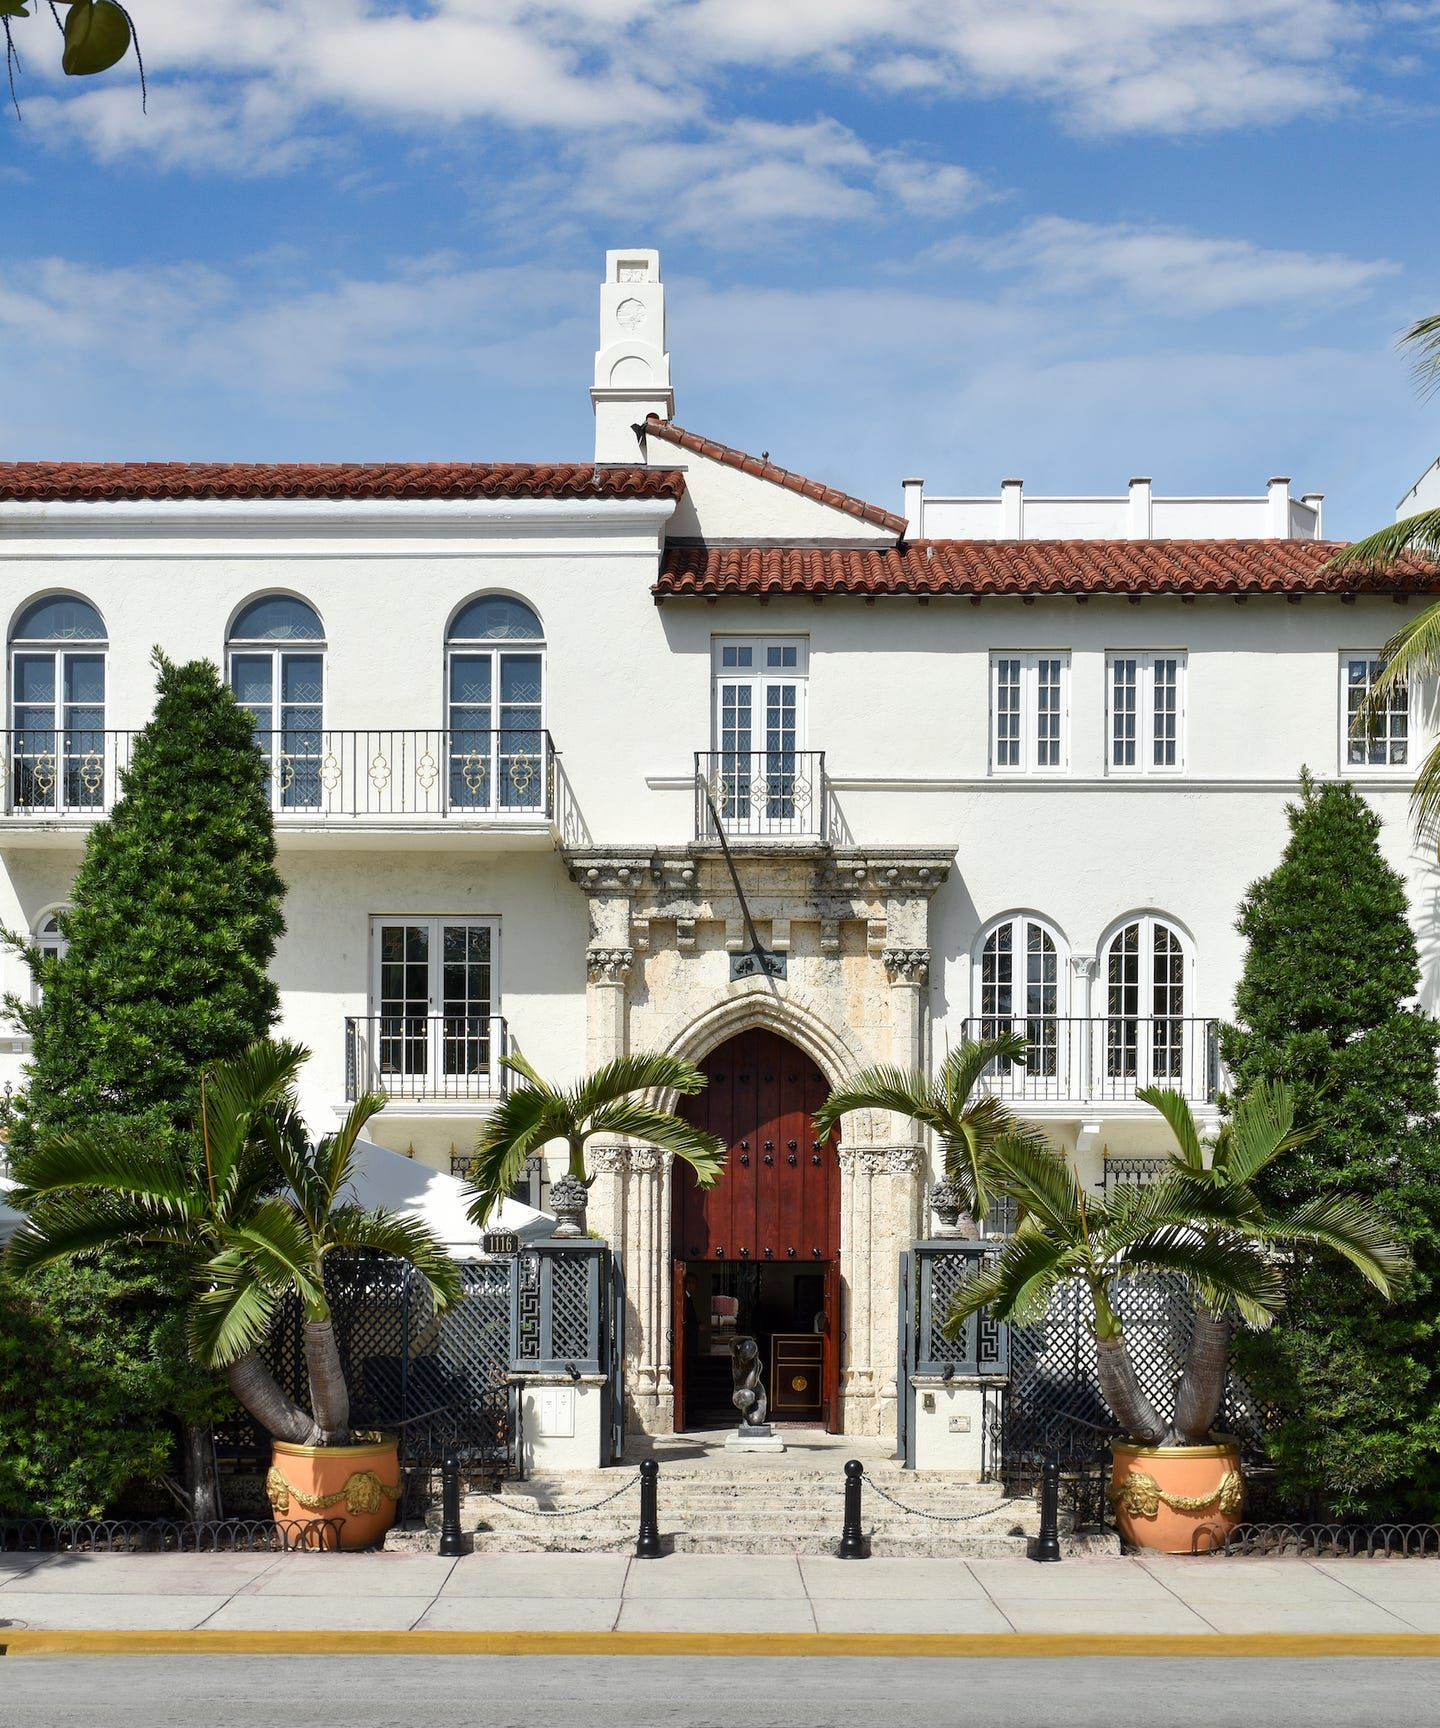 Take A Virtual Tour Of Gianni Versace S Former Miami Mansion Now A Luxury Hotel Mansions Miami Houses Miami Beach Mansion